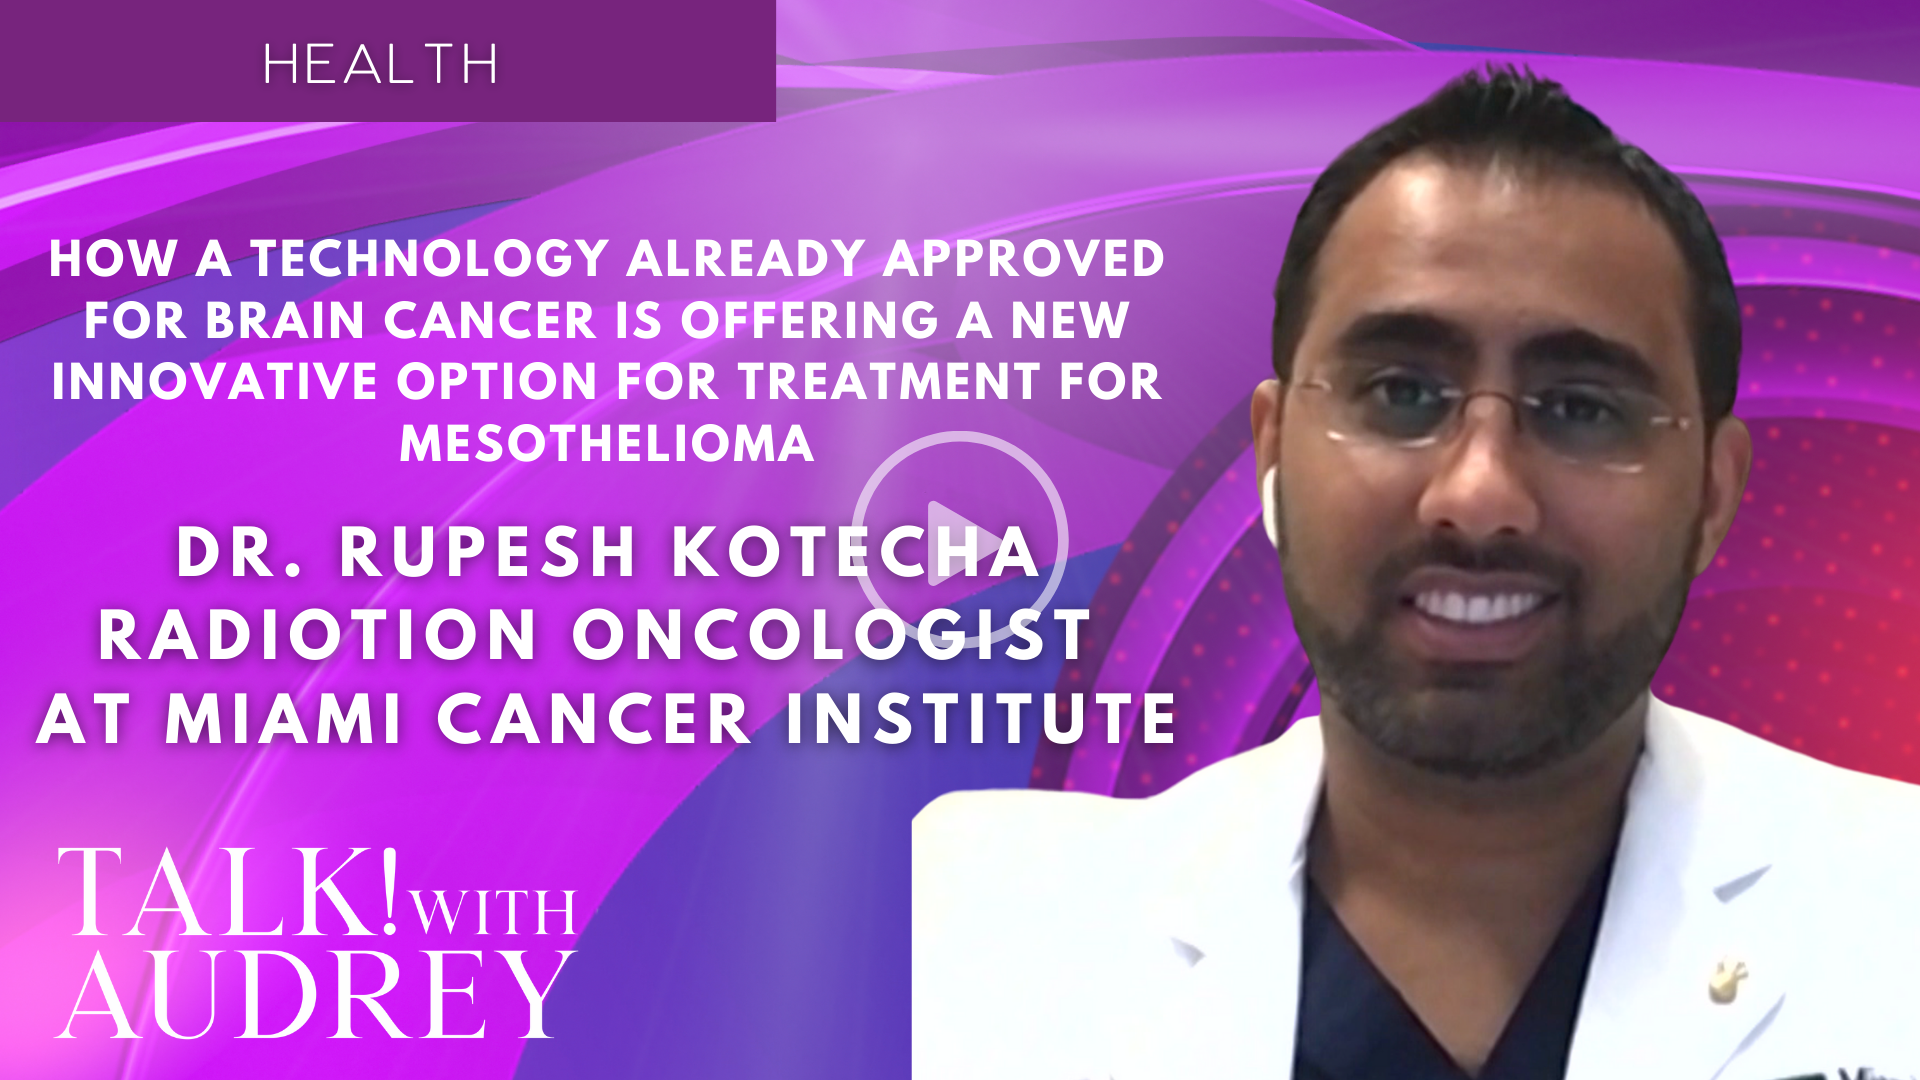 Dr. Rupesh Kotecha, Radiation Oncologist at Miami Cancer Institute – How a Technology Already Approved for Brain Cancer Is Offering a New Innovative Option for Treatment for Mesothelioma